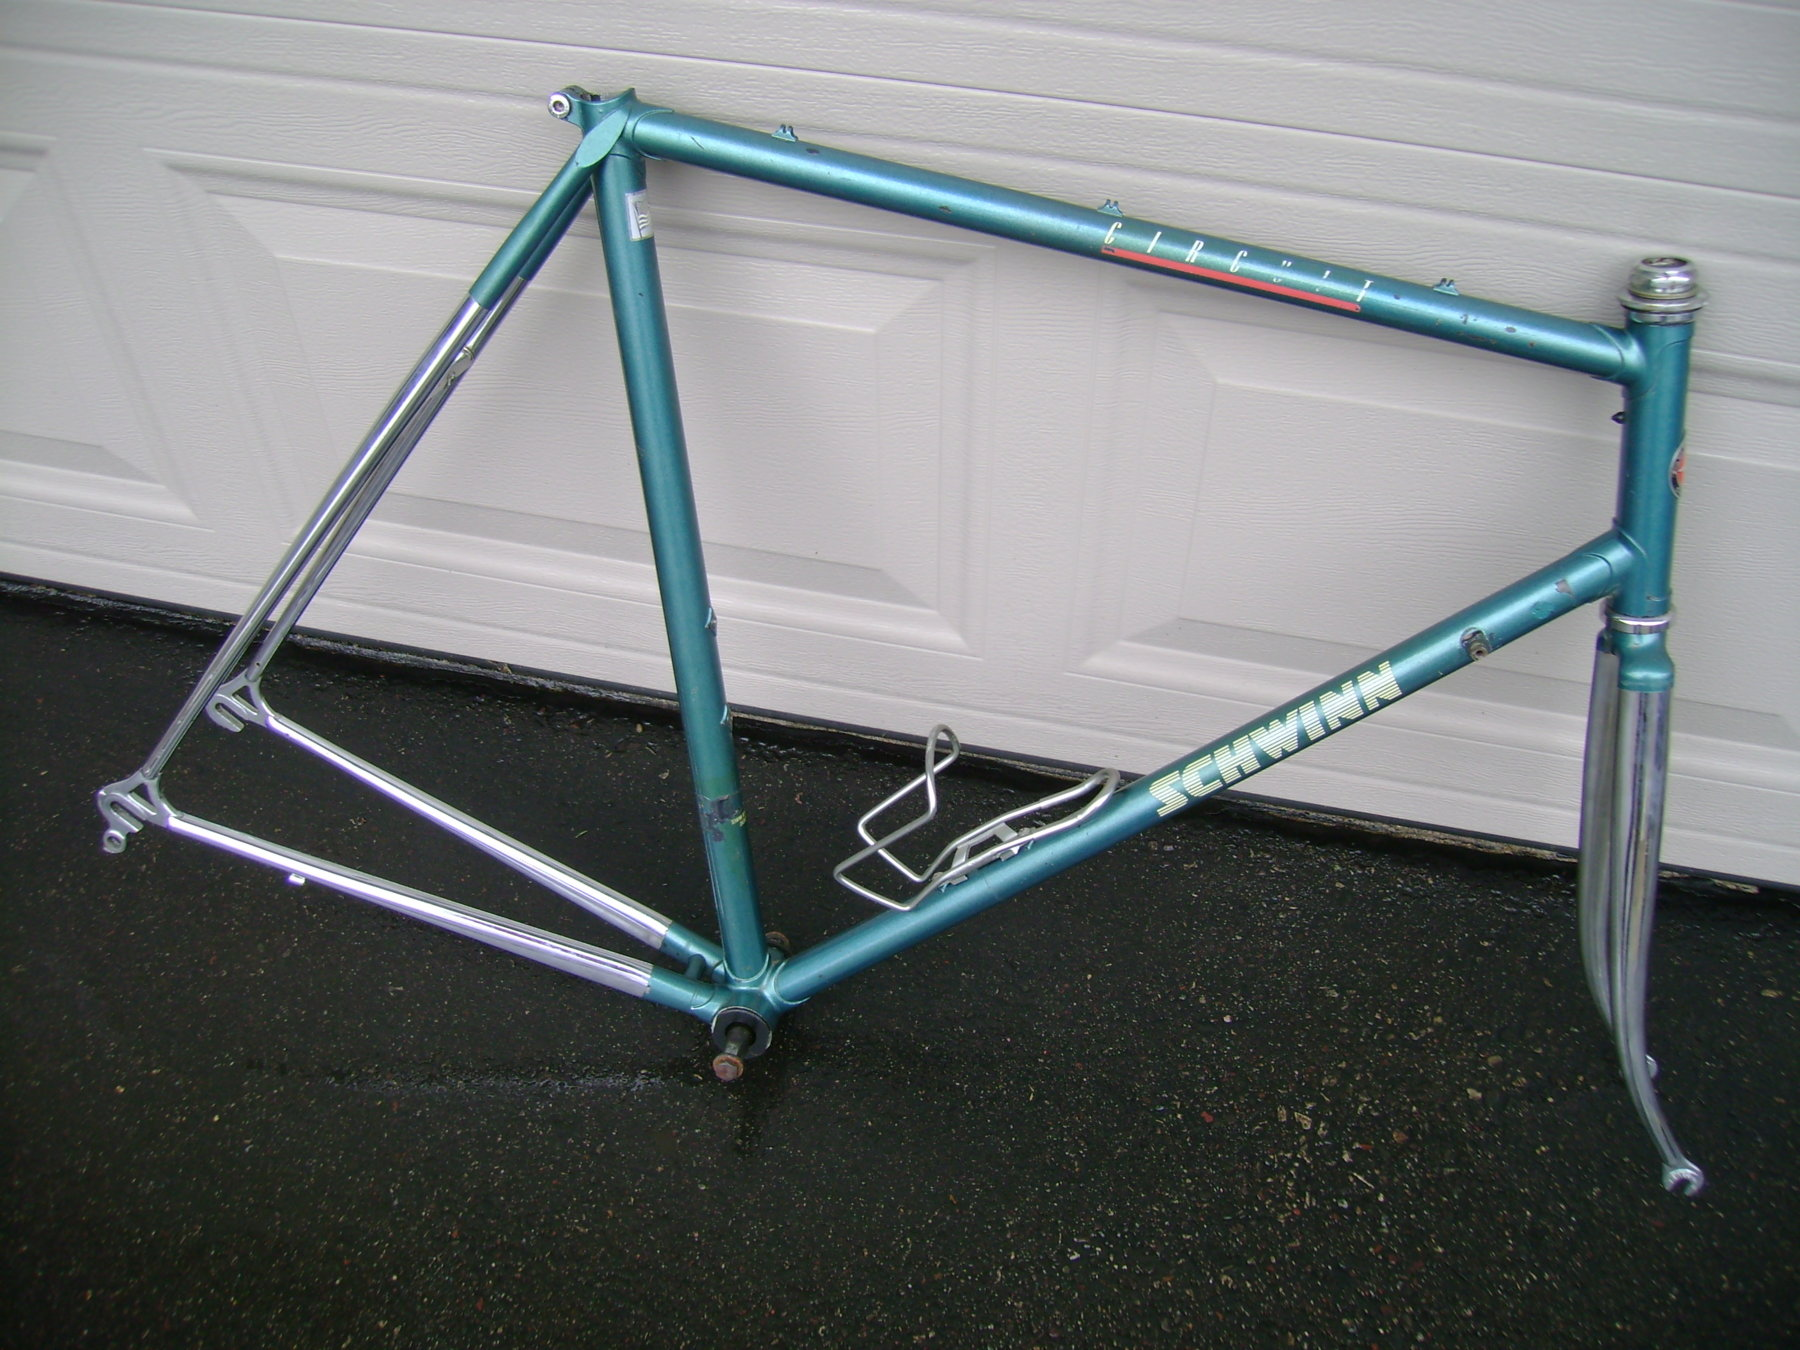 036b4db8f08 F/s 1987 Schwinn Circuit Frame/fork (rare Color) | The Classic and ...